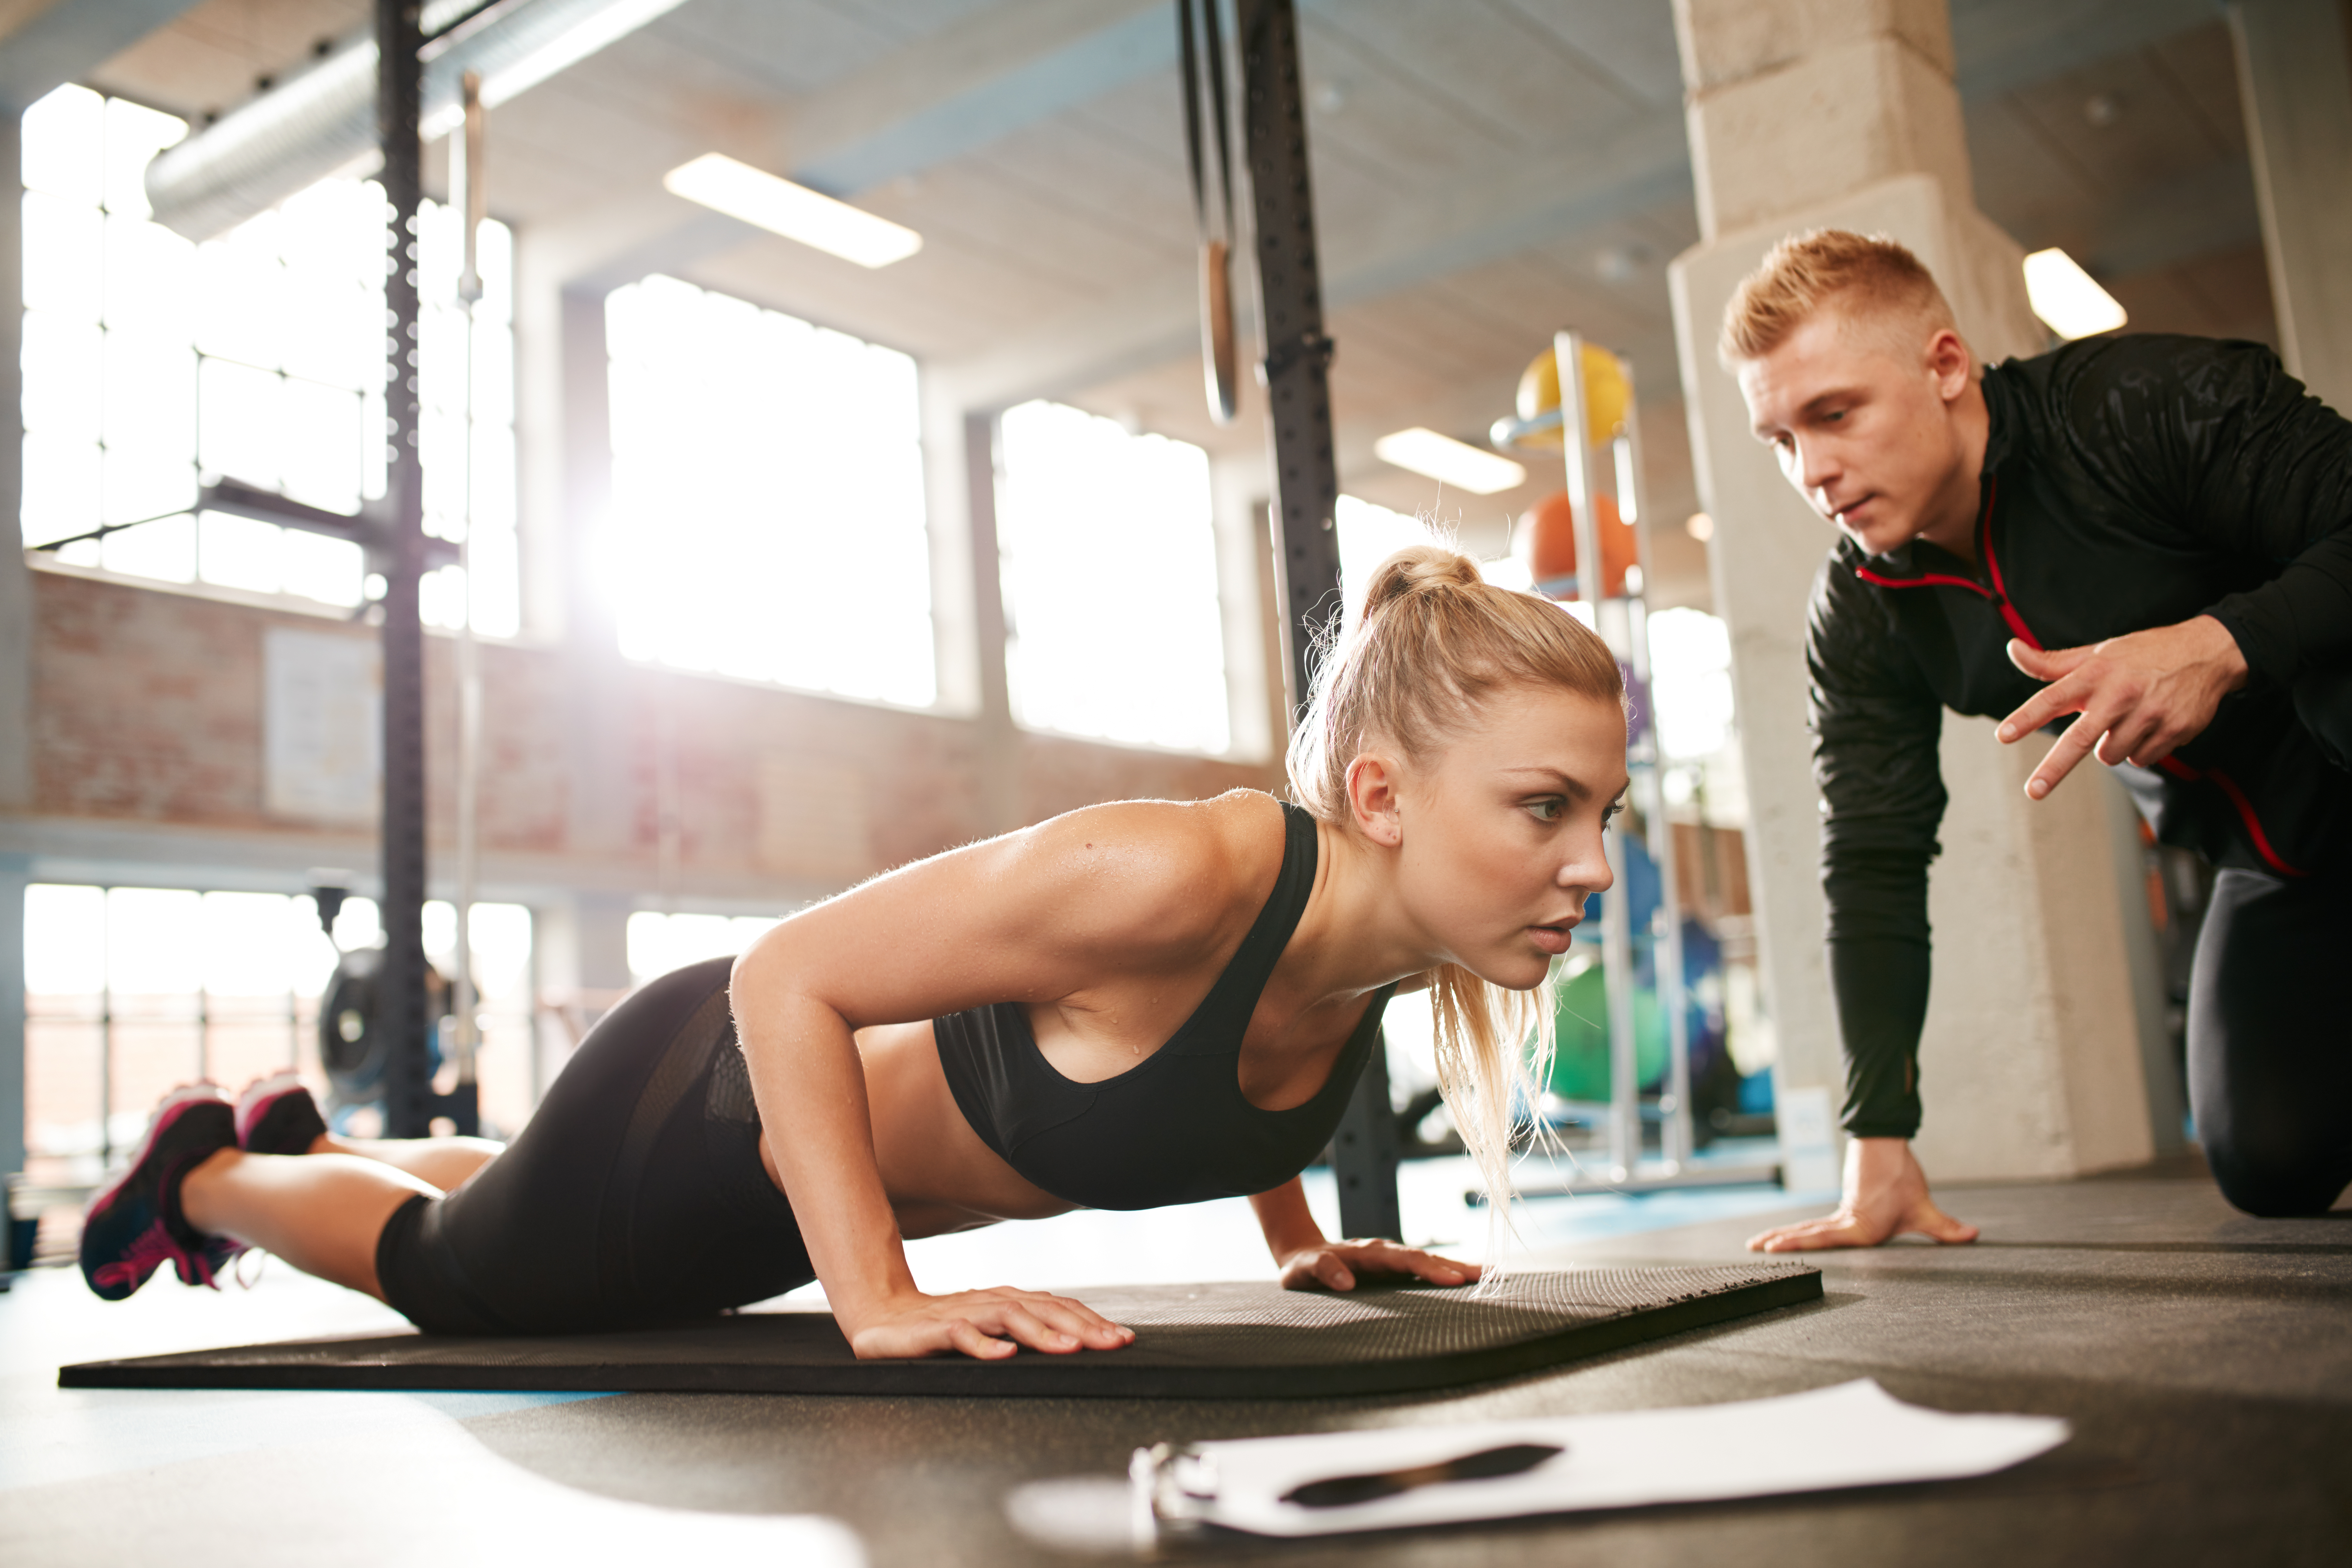 female-exercising-with-personal-trainer-at-gym-PSDYQTU